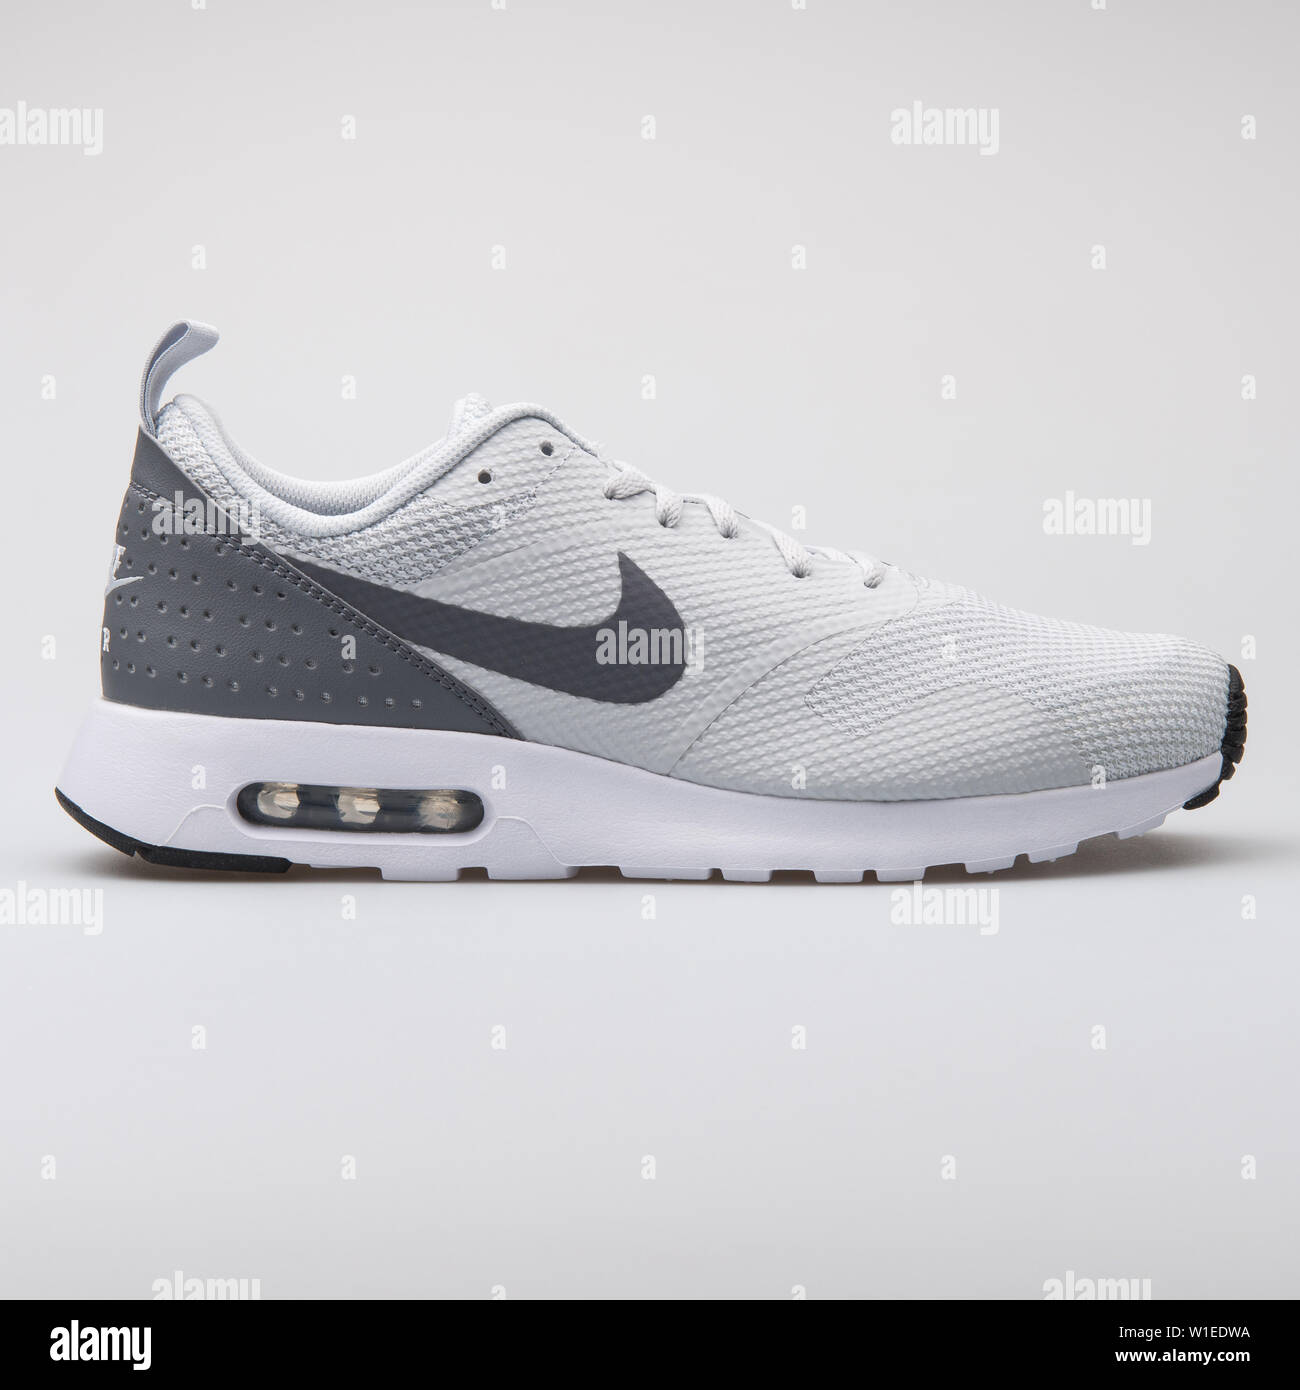 superior quality f4a2f 1c29a VIENNA, AUSTRIA - AUGUST 7, 2017: Nike Air Max Tavas grey ...